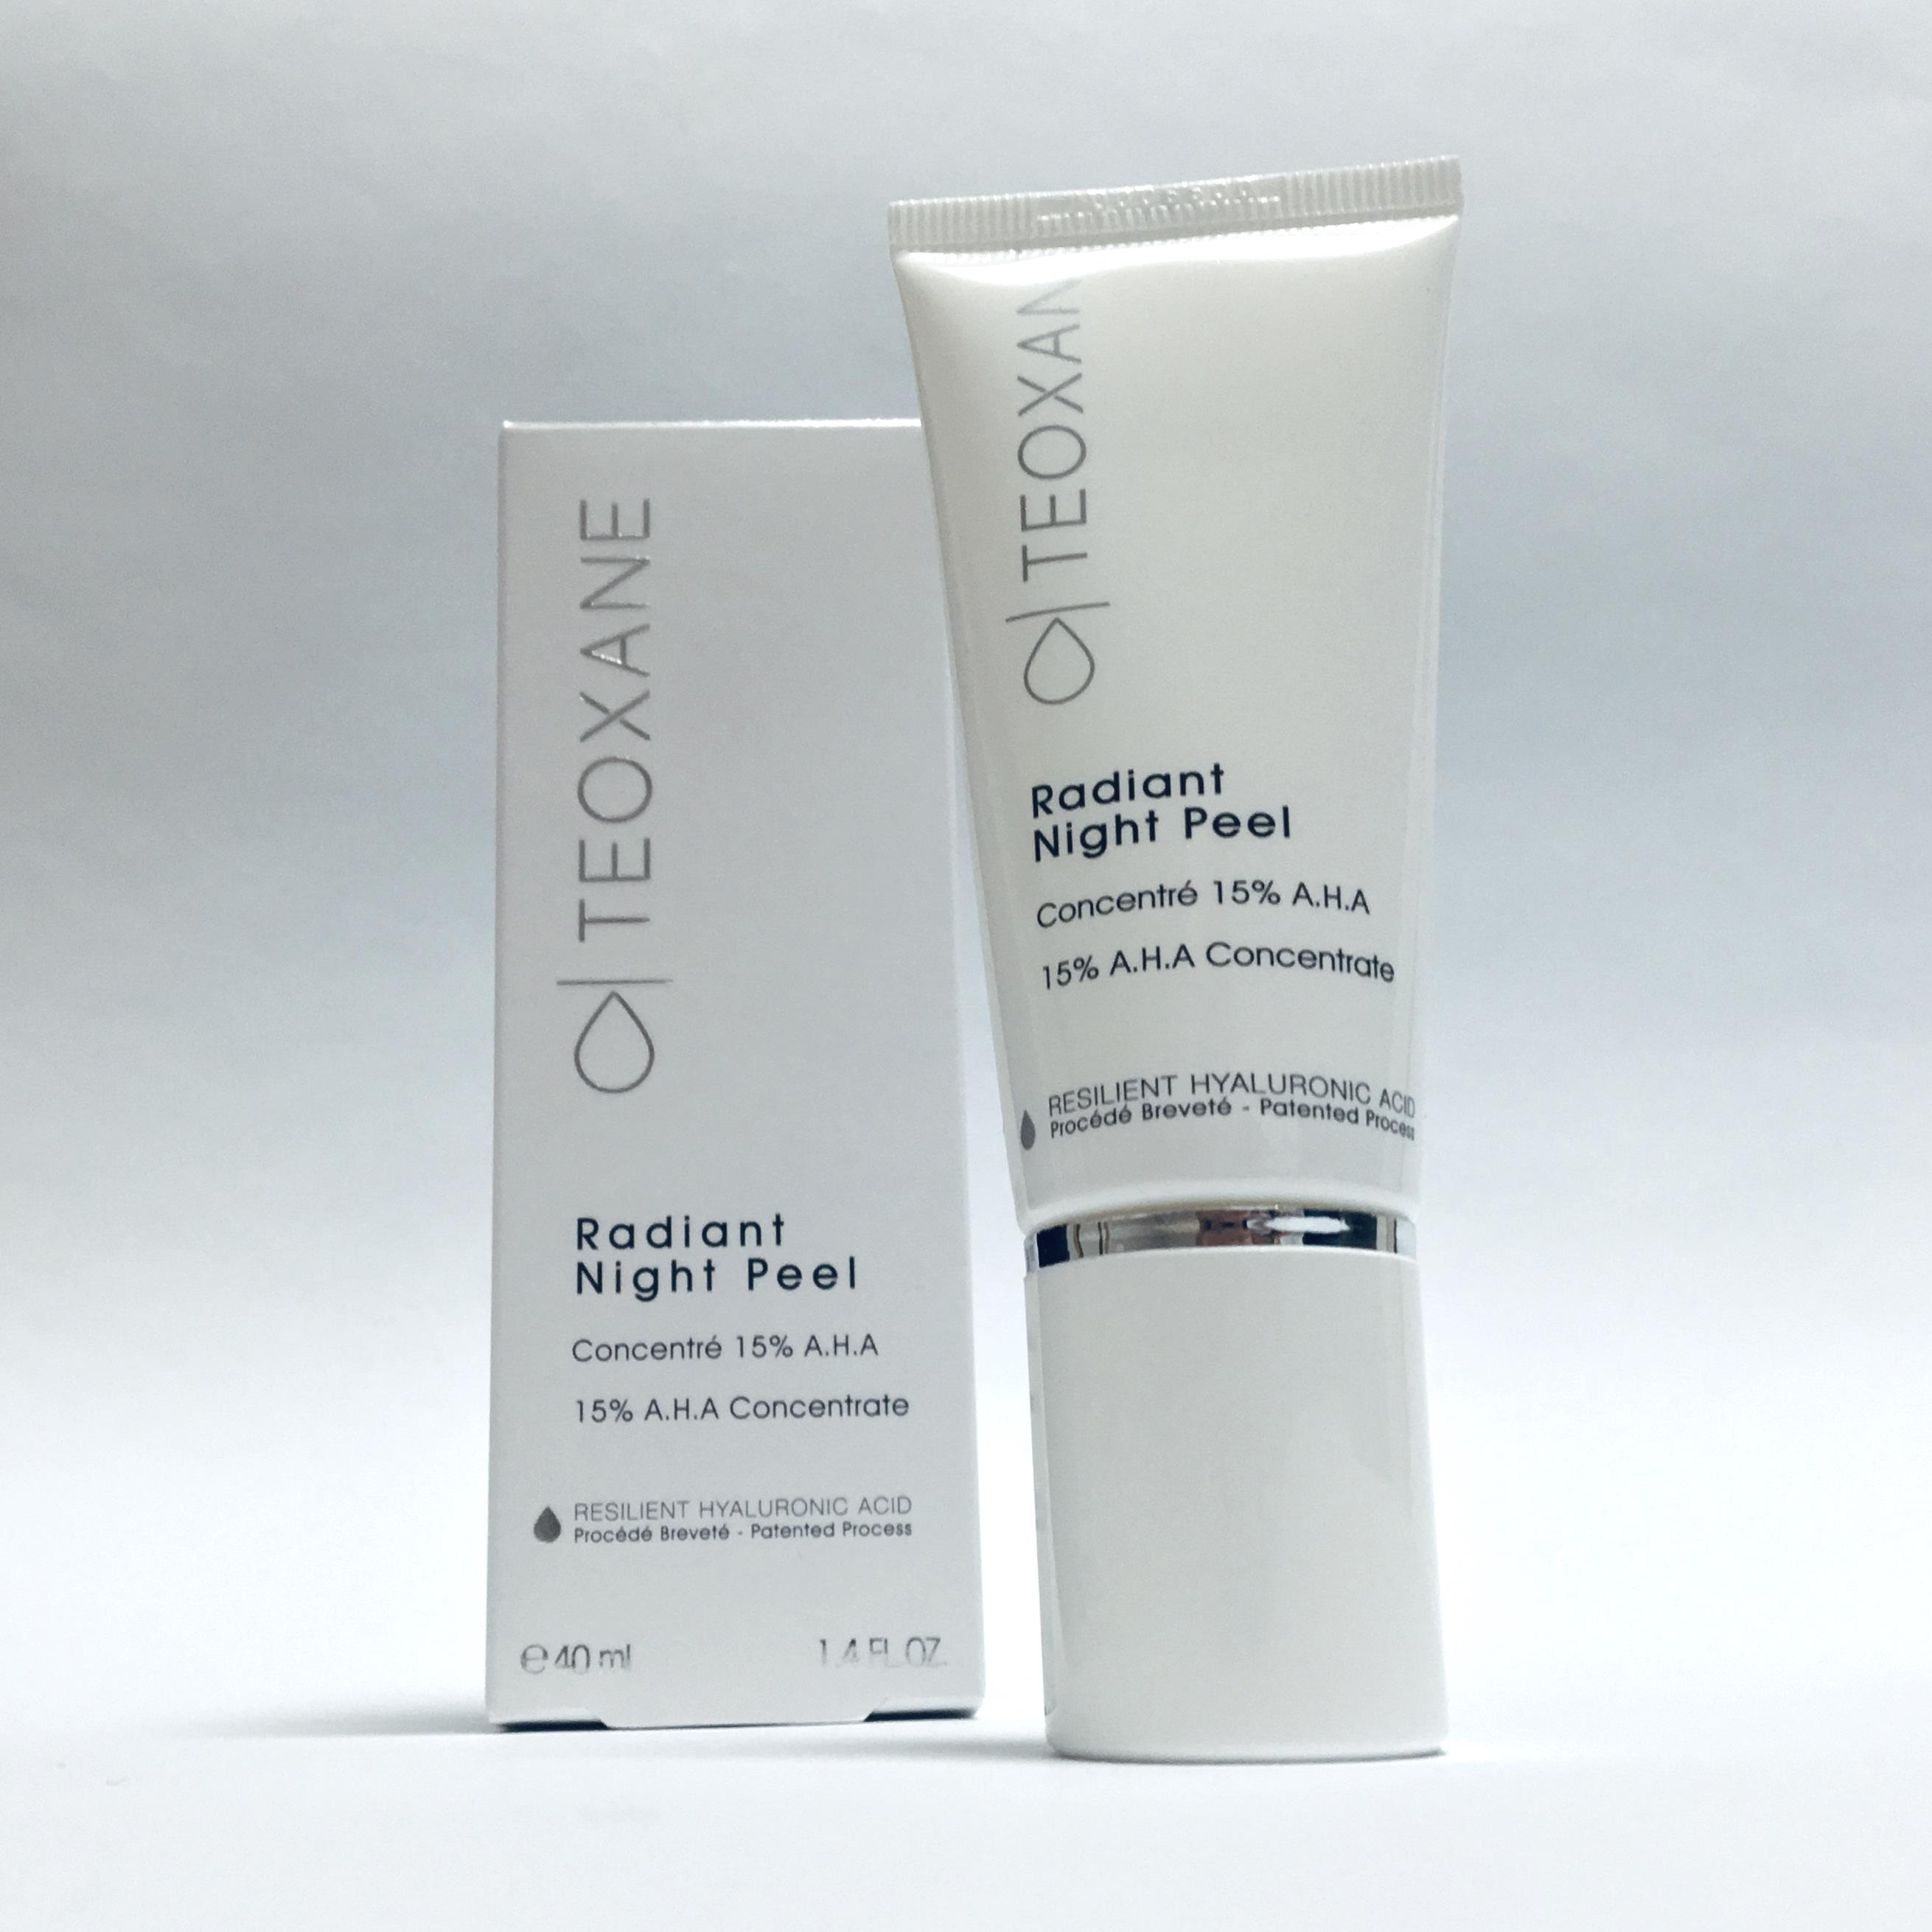 teoxane anzeige cosmeceuticals radiant night peel